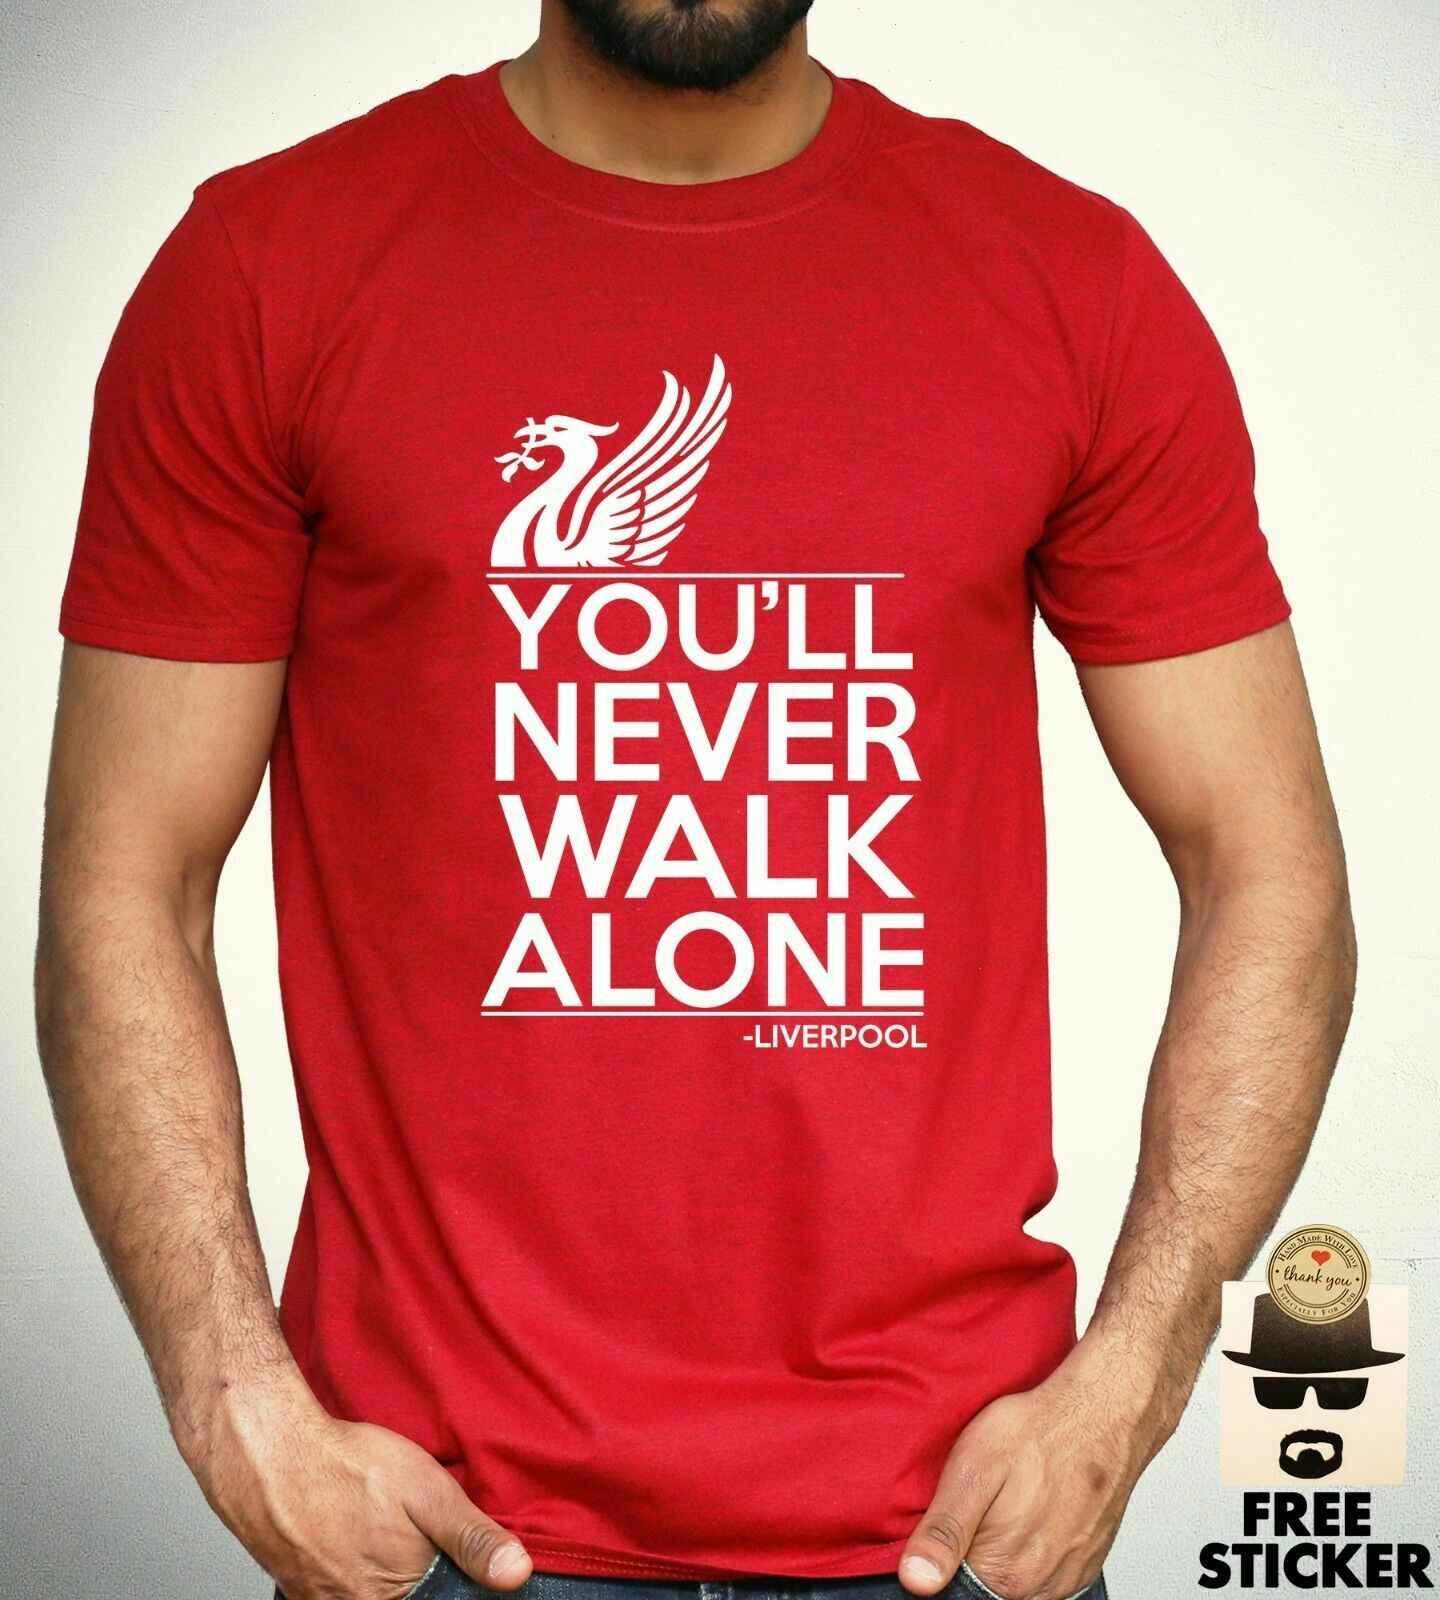 2d42894ad Liverpool T Shirt you'll never walk alone Football Fan Club YNWA Mens Gift  Tee